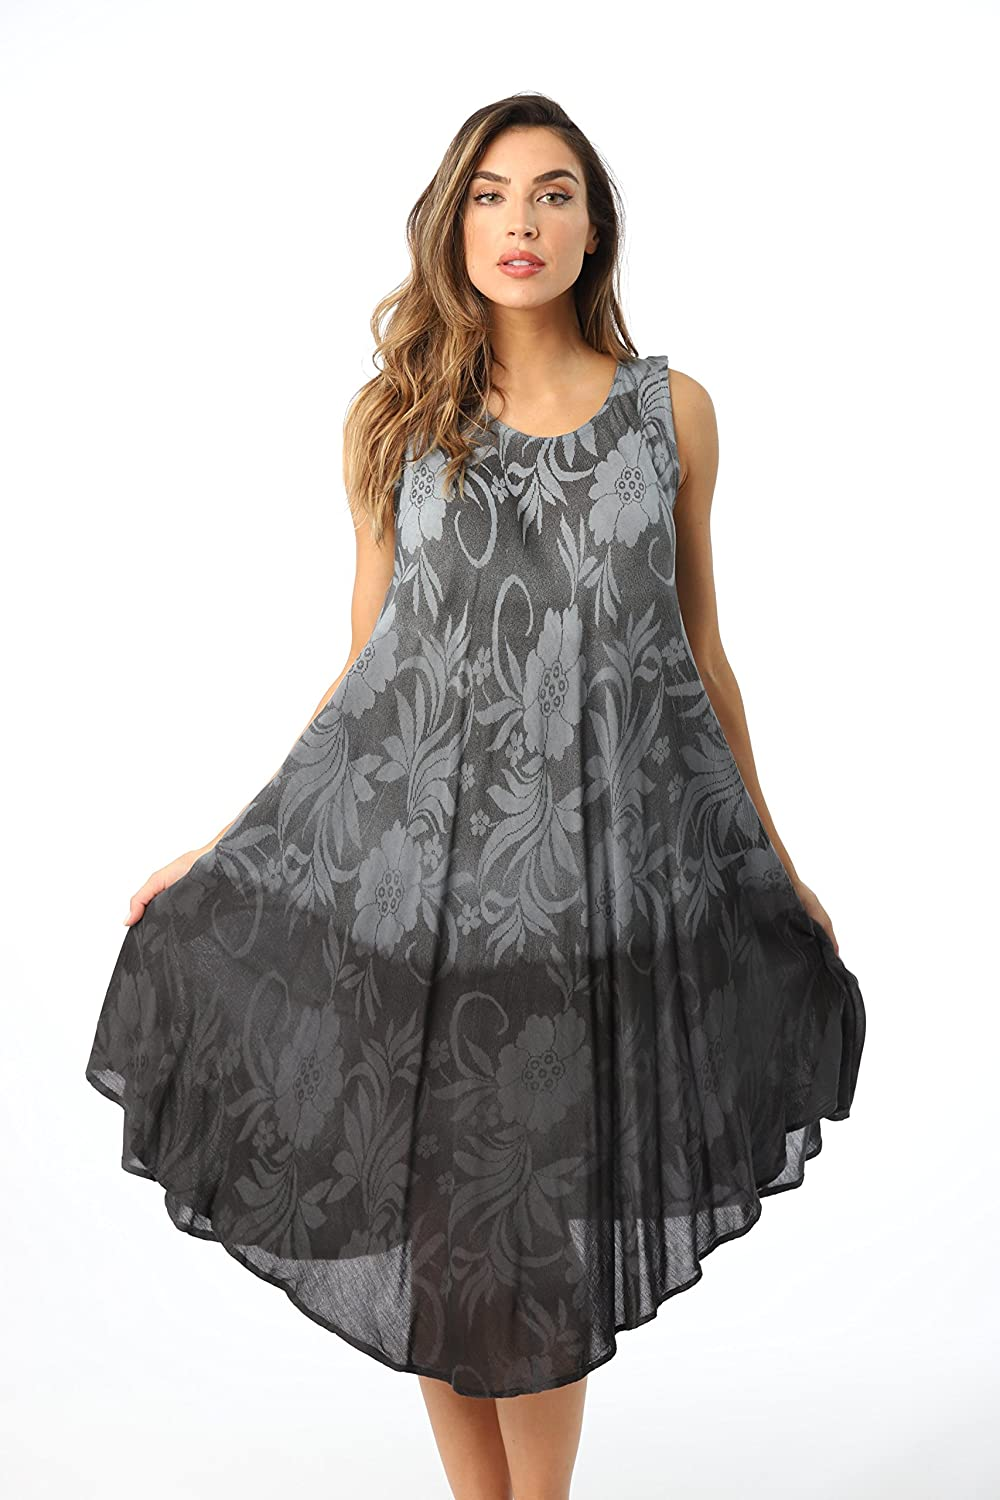 Riviera Sun Ombre Tie Dye Summer Dress with Floral Painted Design